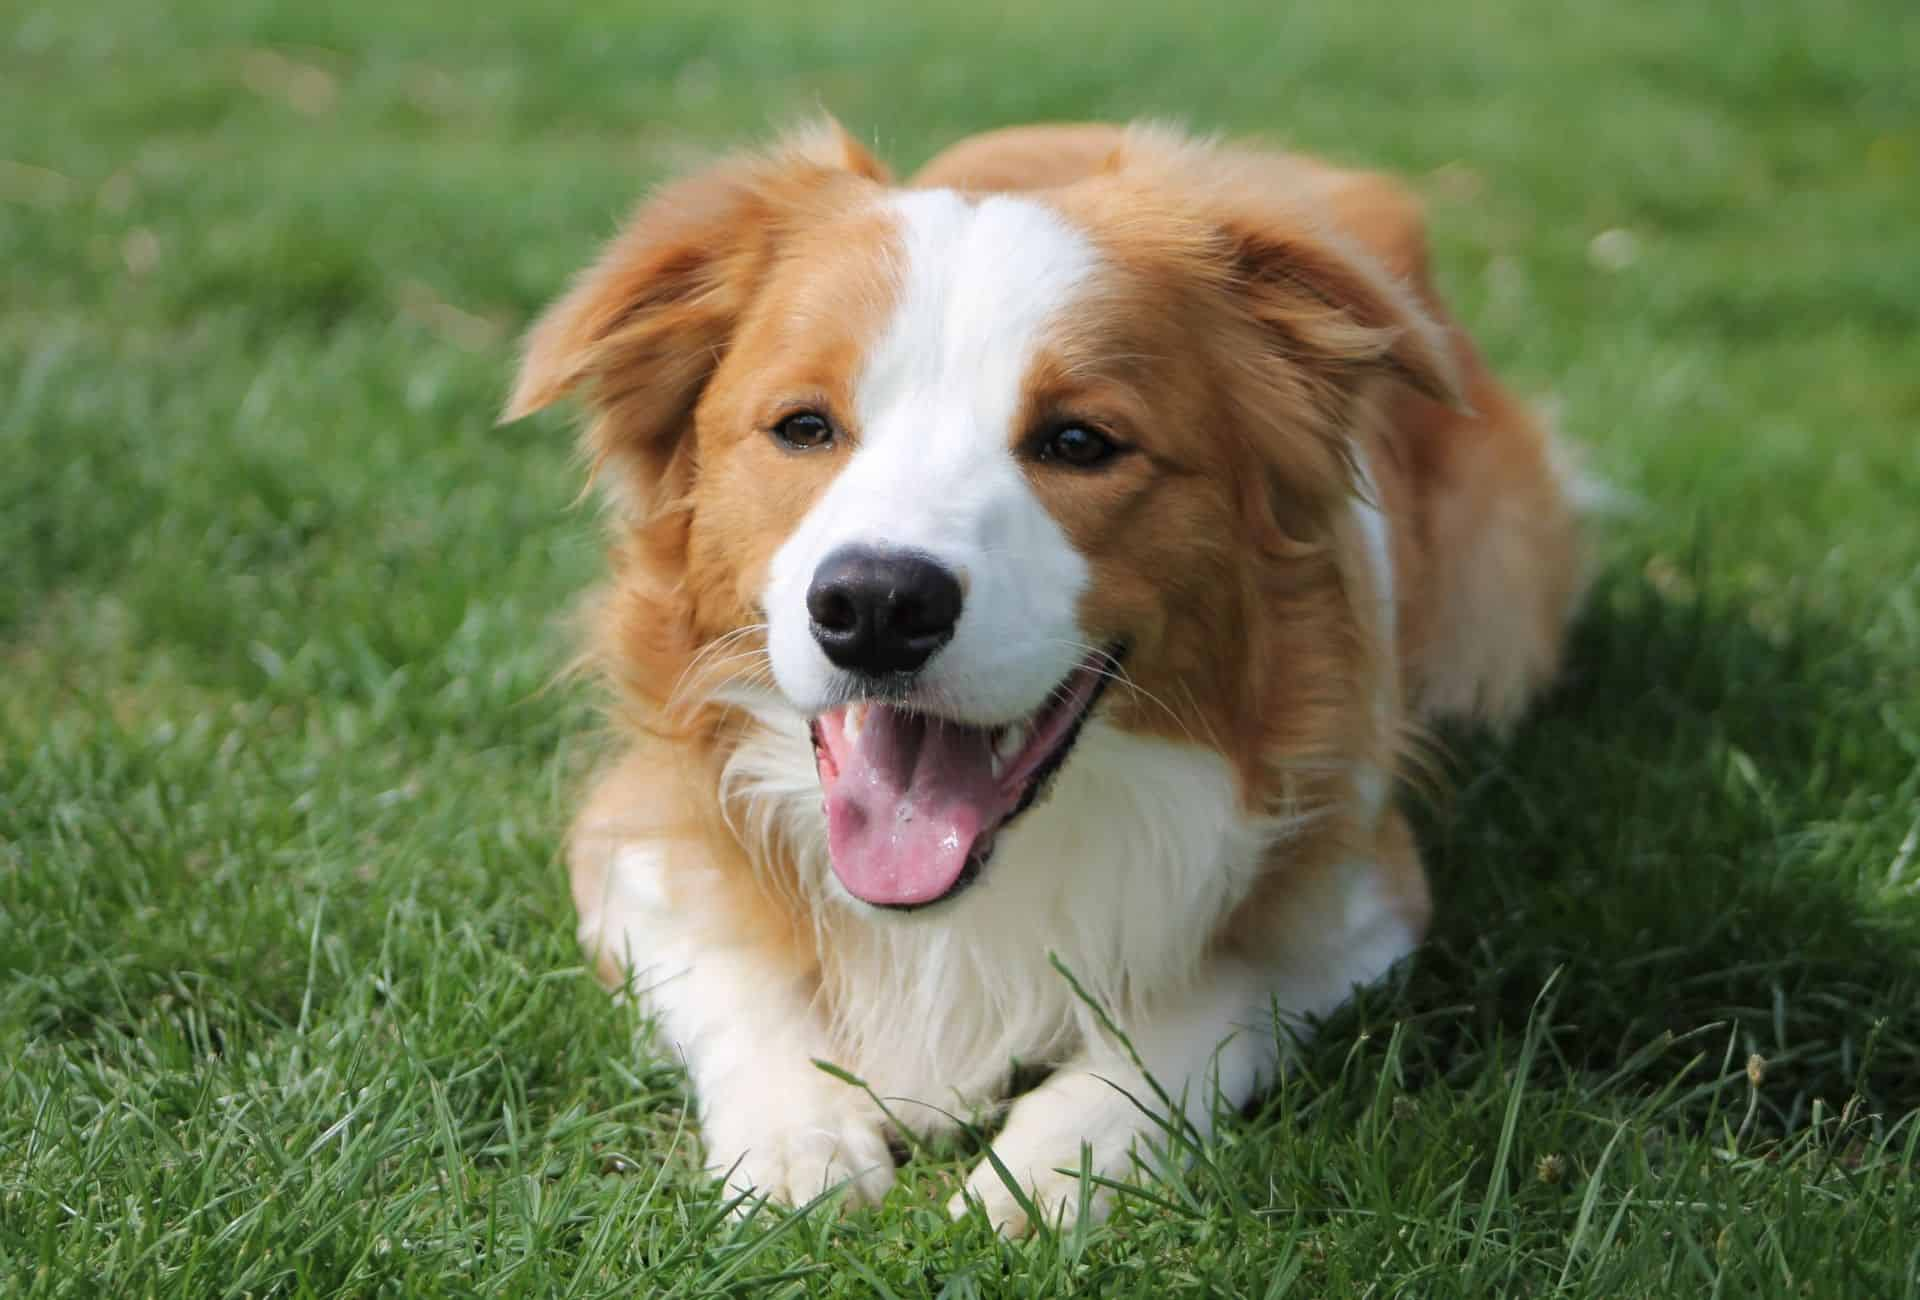 Gold Border Collie with white between the eyes lying down on grass.